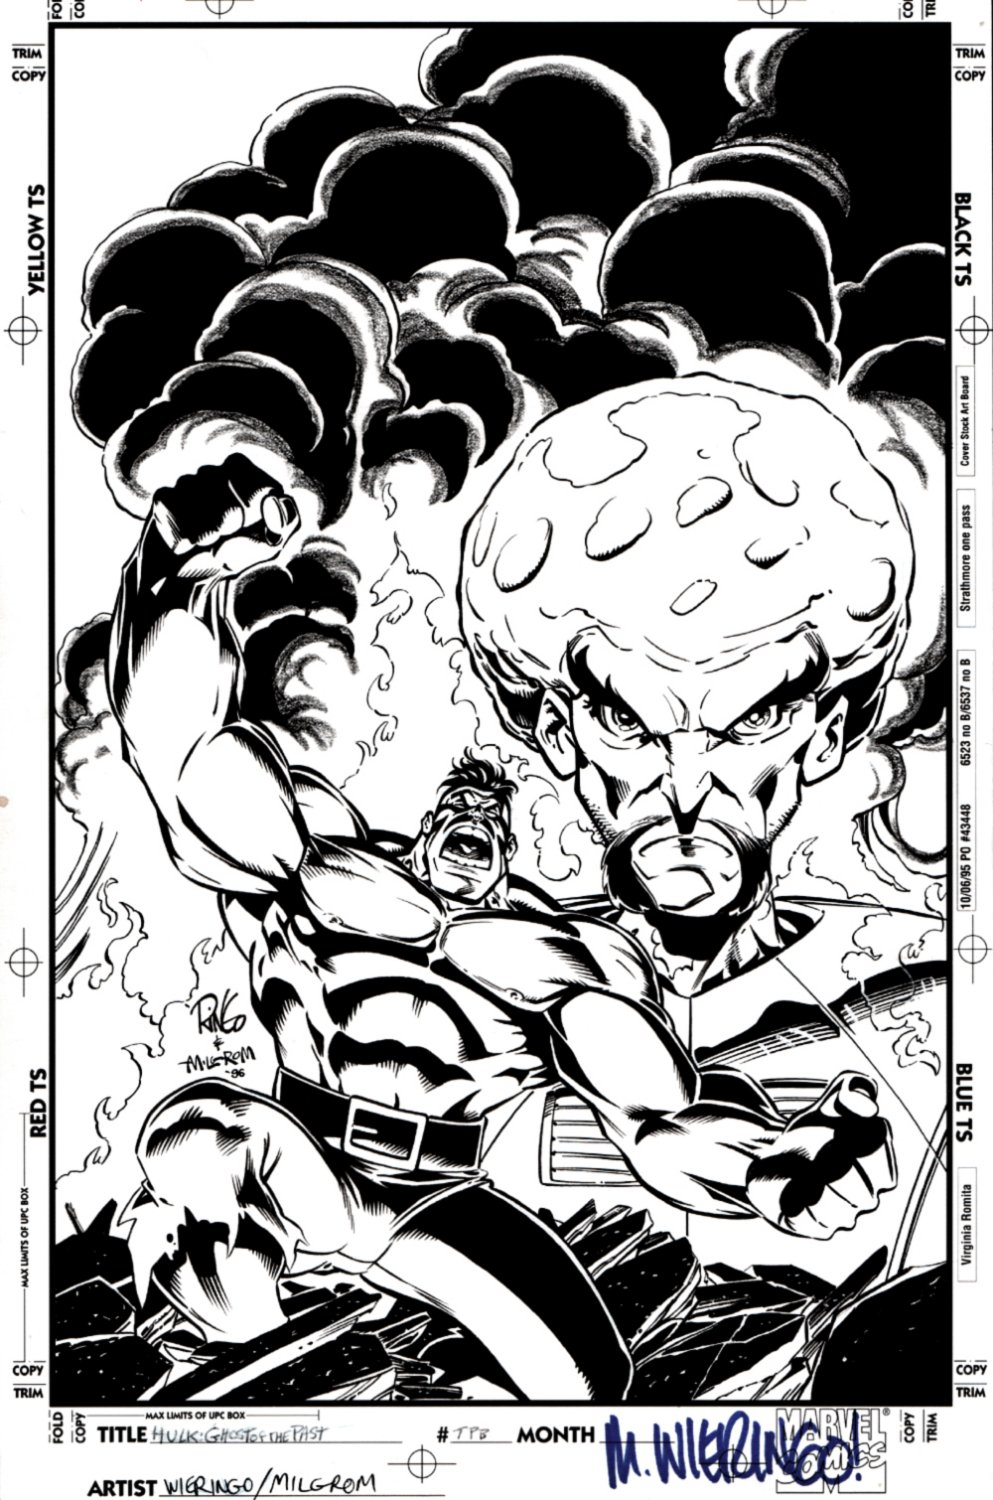 Hulk: Ghost of the Past TPB Cover (HULK VS THE LEADER!) 1996